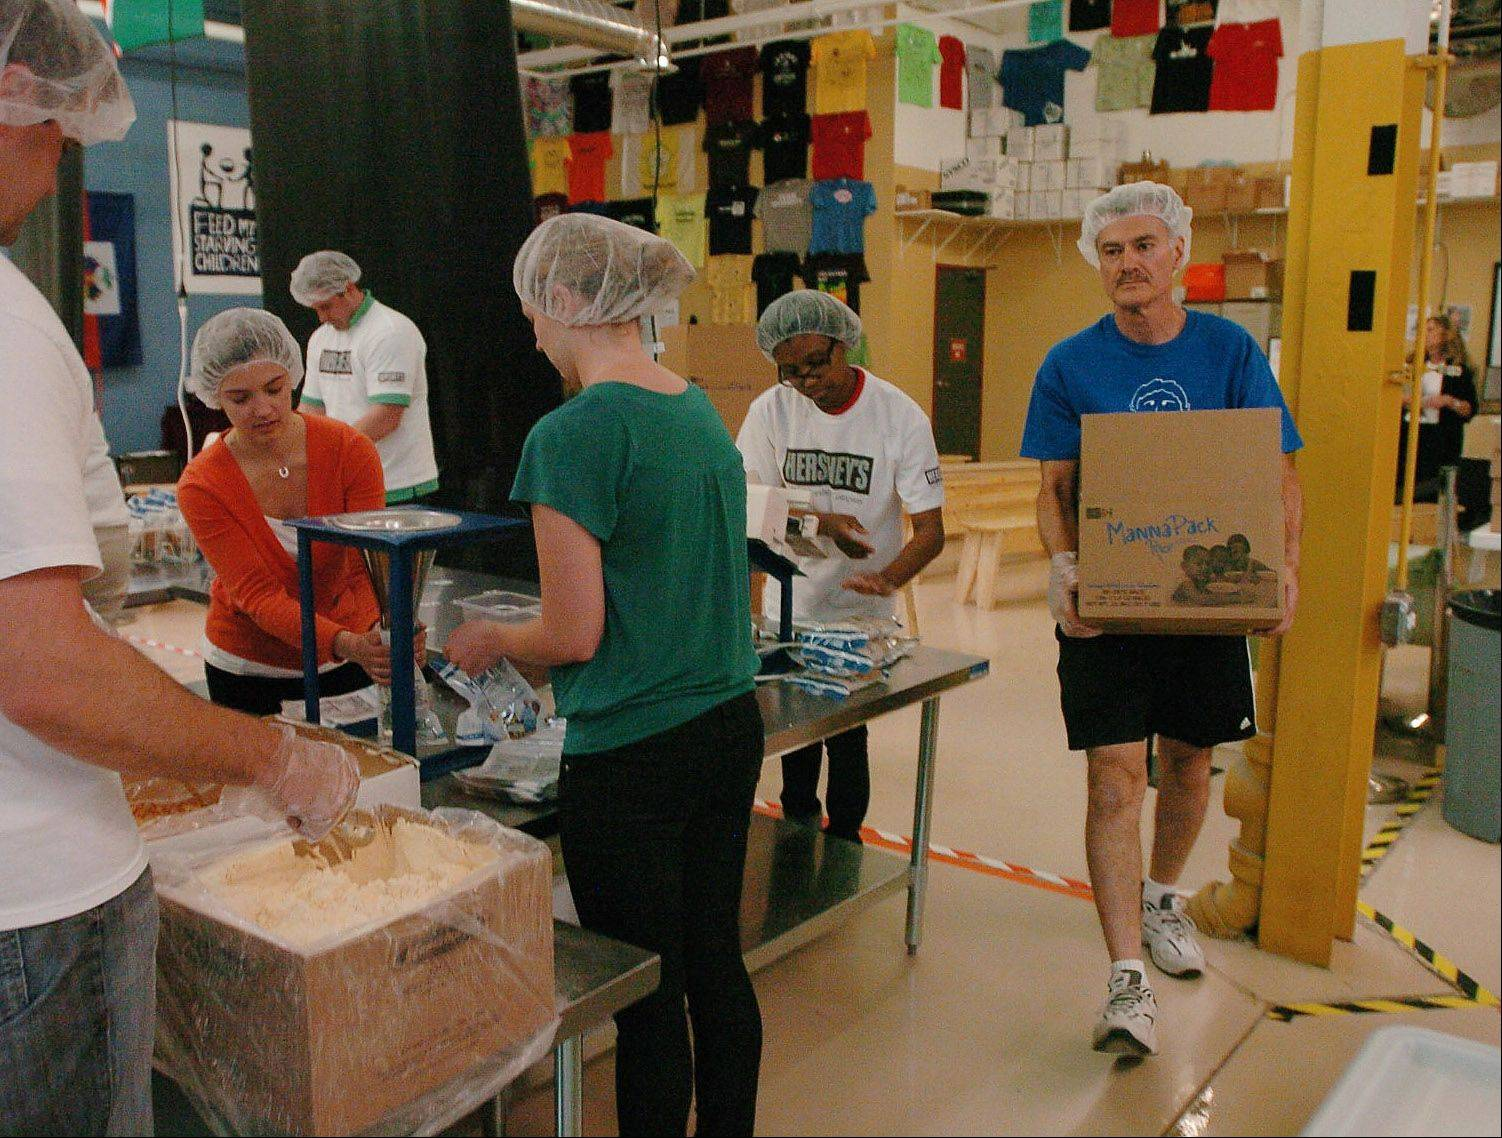 Rich takes away a freshly packed MannaPack box for shipping at Feed My Starving Children in Schaumburg.